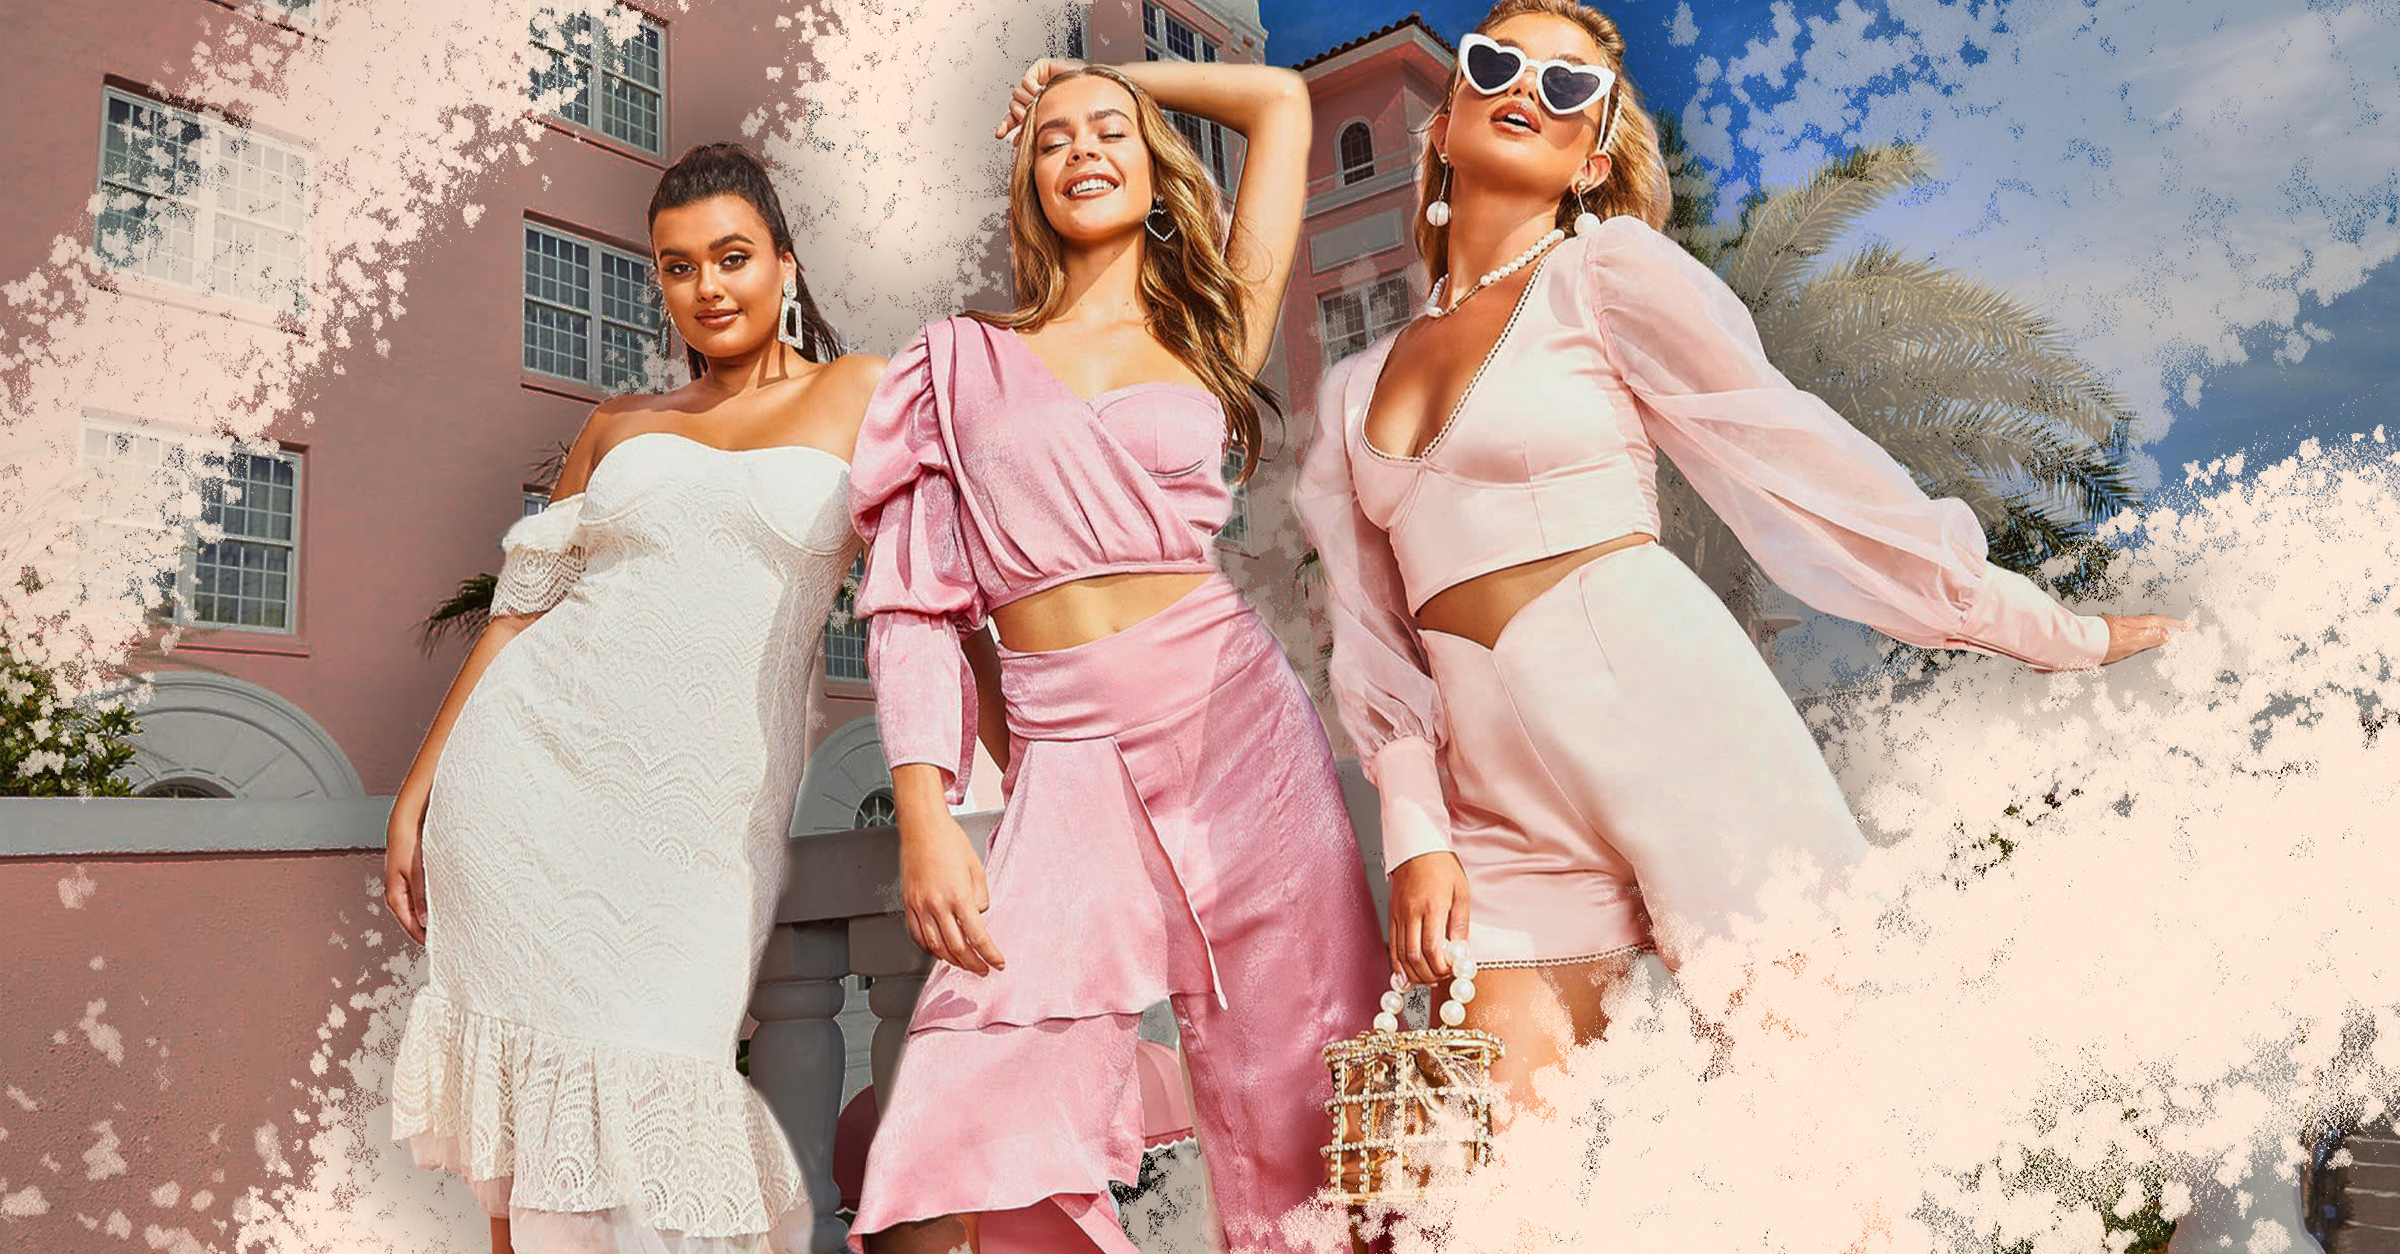 Boohoo Clothing: the Big Player of Digital Fast Fashion Era